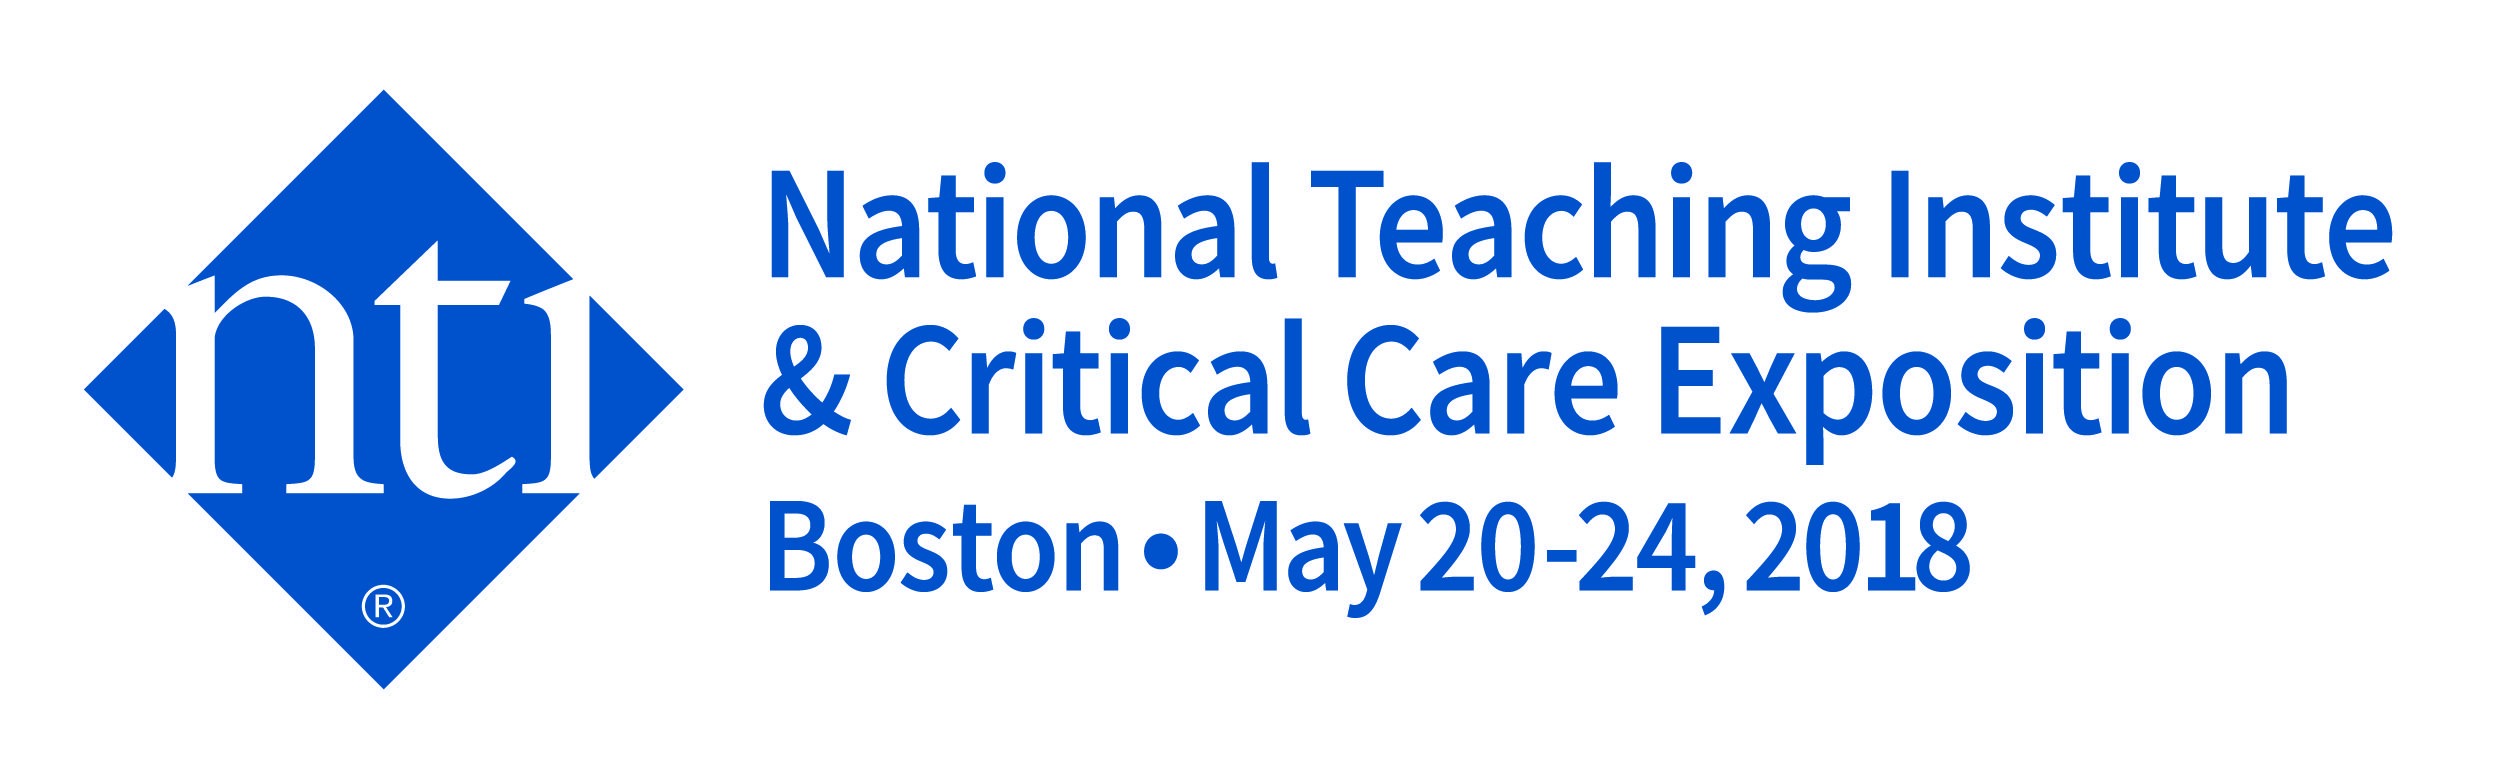 AACN's annual National Teaching Institute & Critical Care